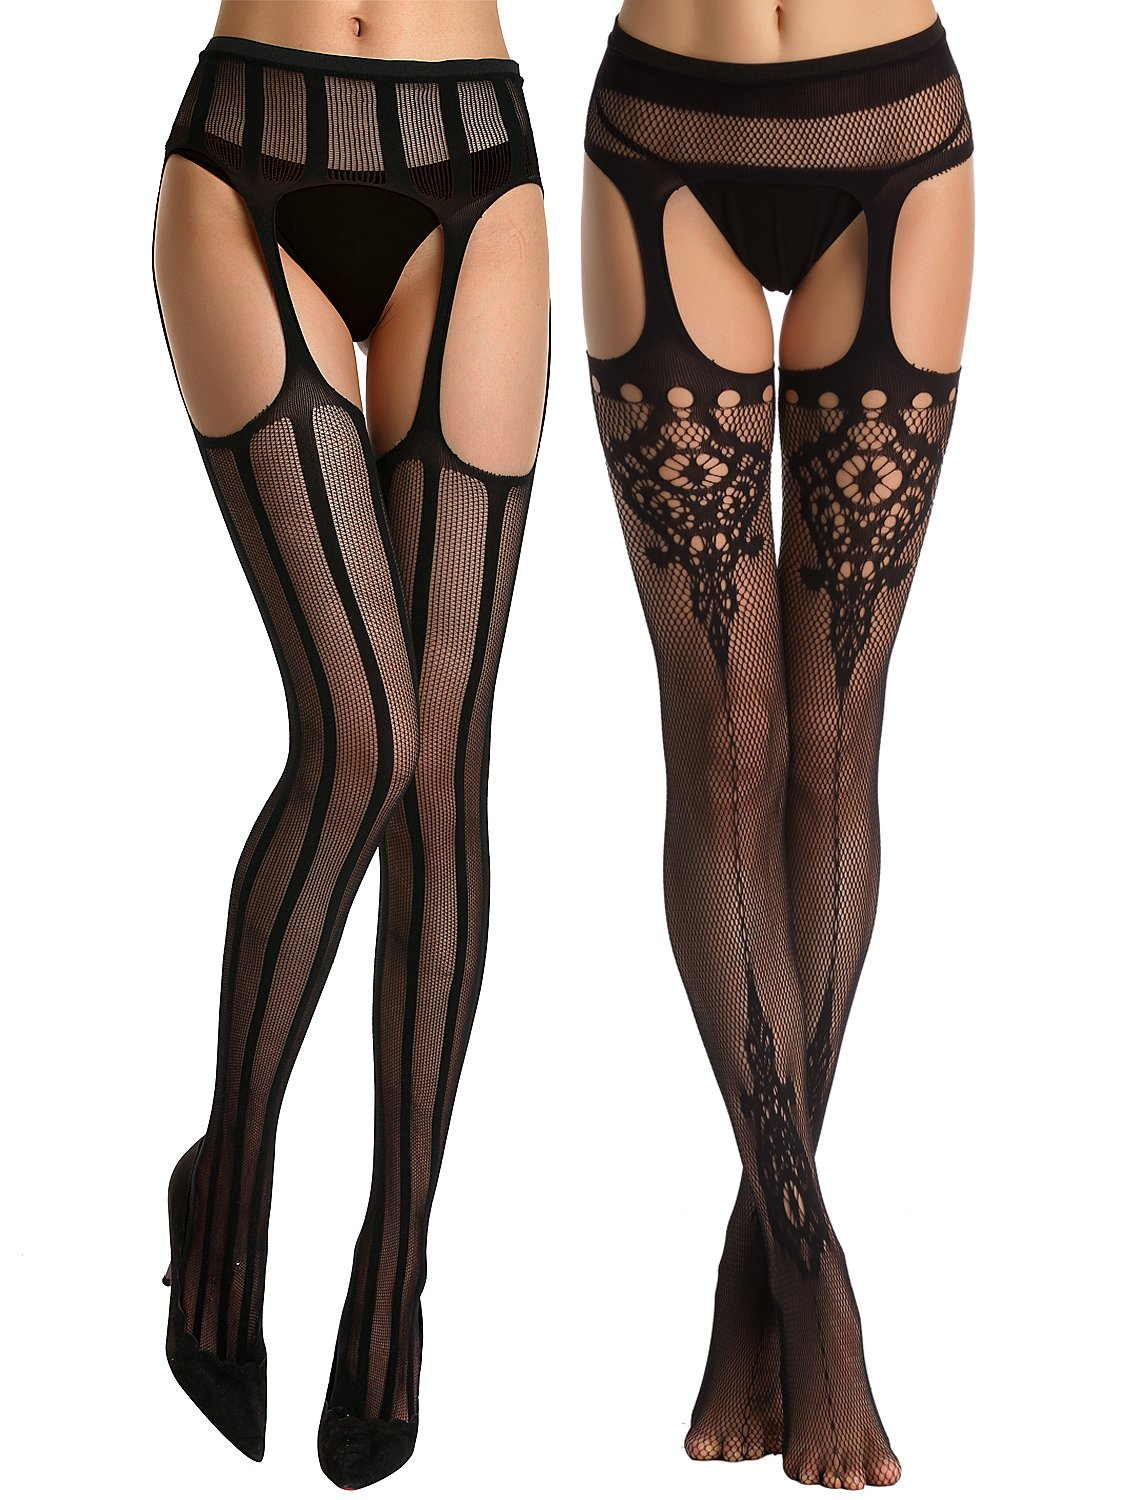 Florboom Womens Sexy Fishnet Floral Striped Pantyhose Suspender Tights 2 Pack